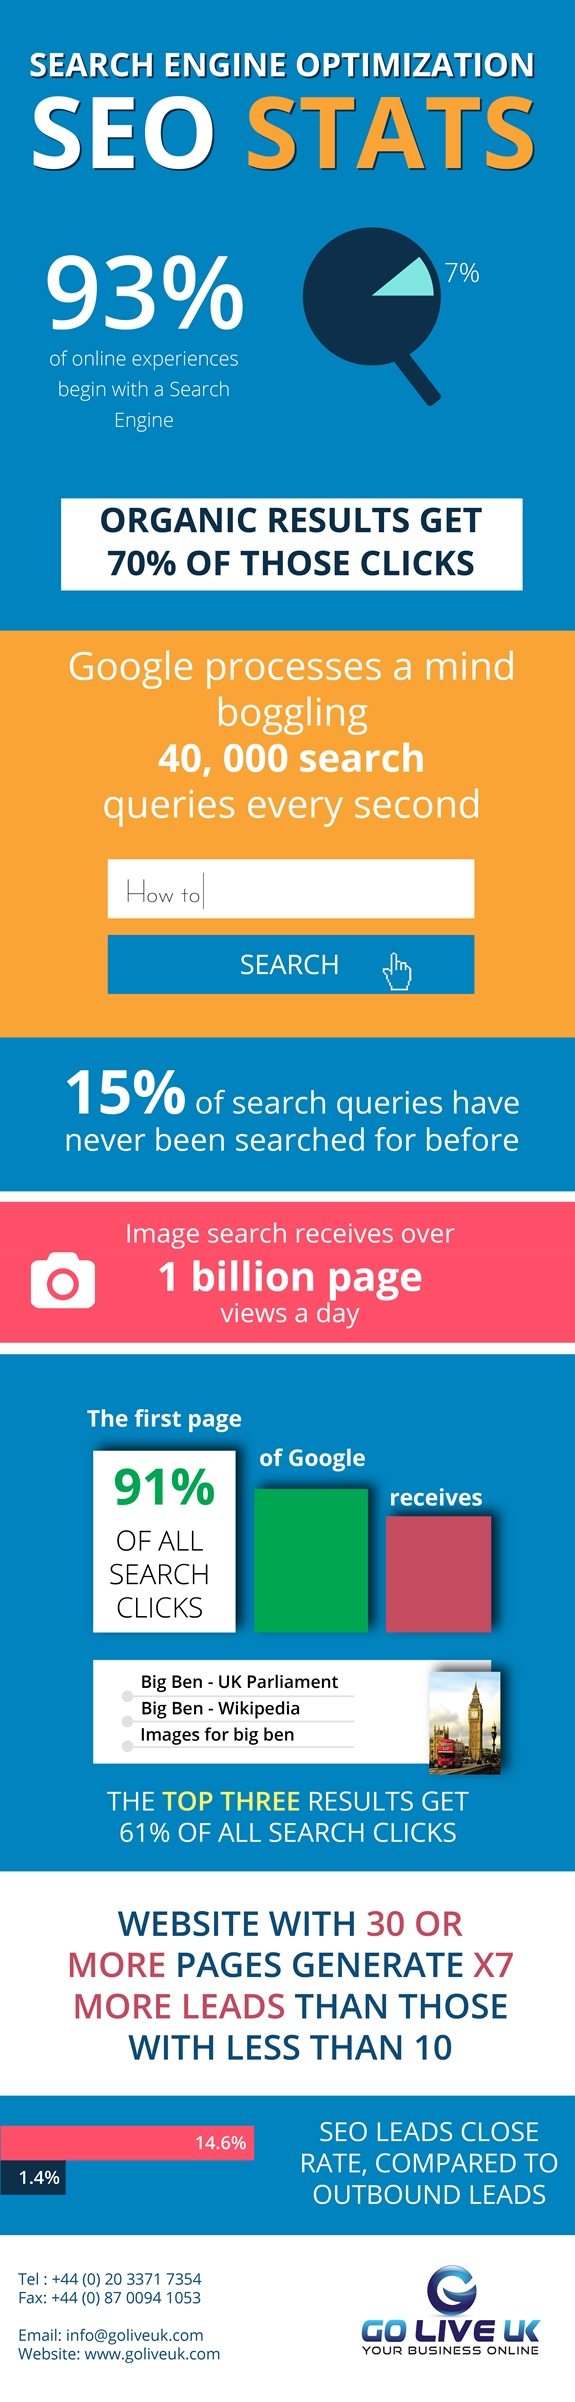 9 Search Engine Optimisation Stats That Will Make You Rethink Your Marketing Strategy [Infographic]